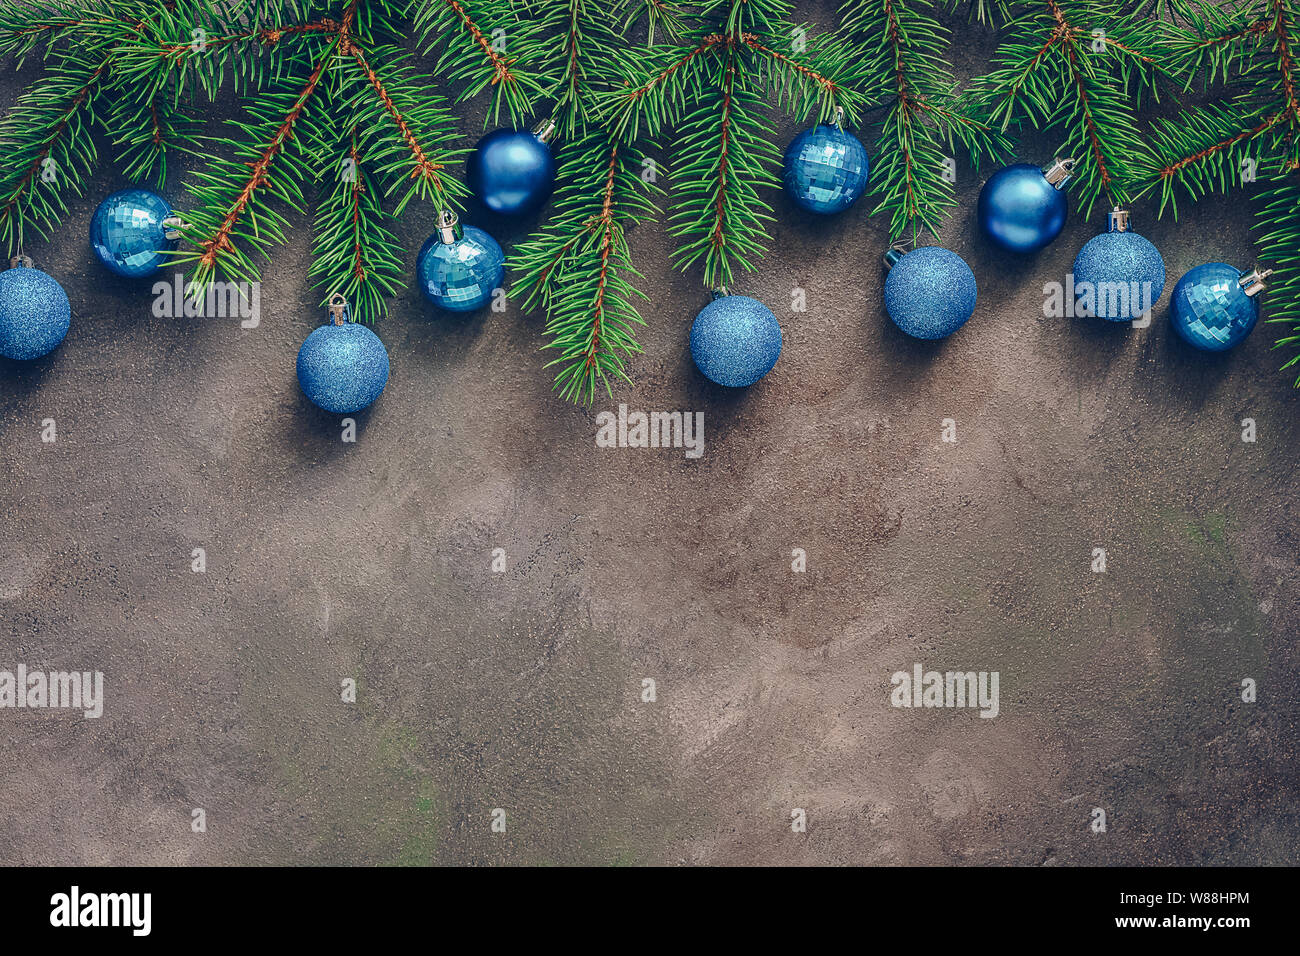 Beautiful Christmas Composition Spruce Branches Decorated With Blue Balls On A Dark Rustic Background Border Top View Flat Lay Copy Space Stock Photo Alamy